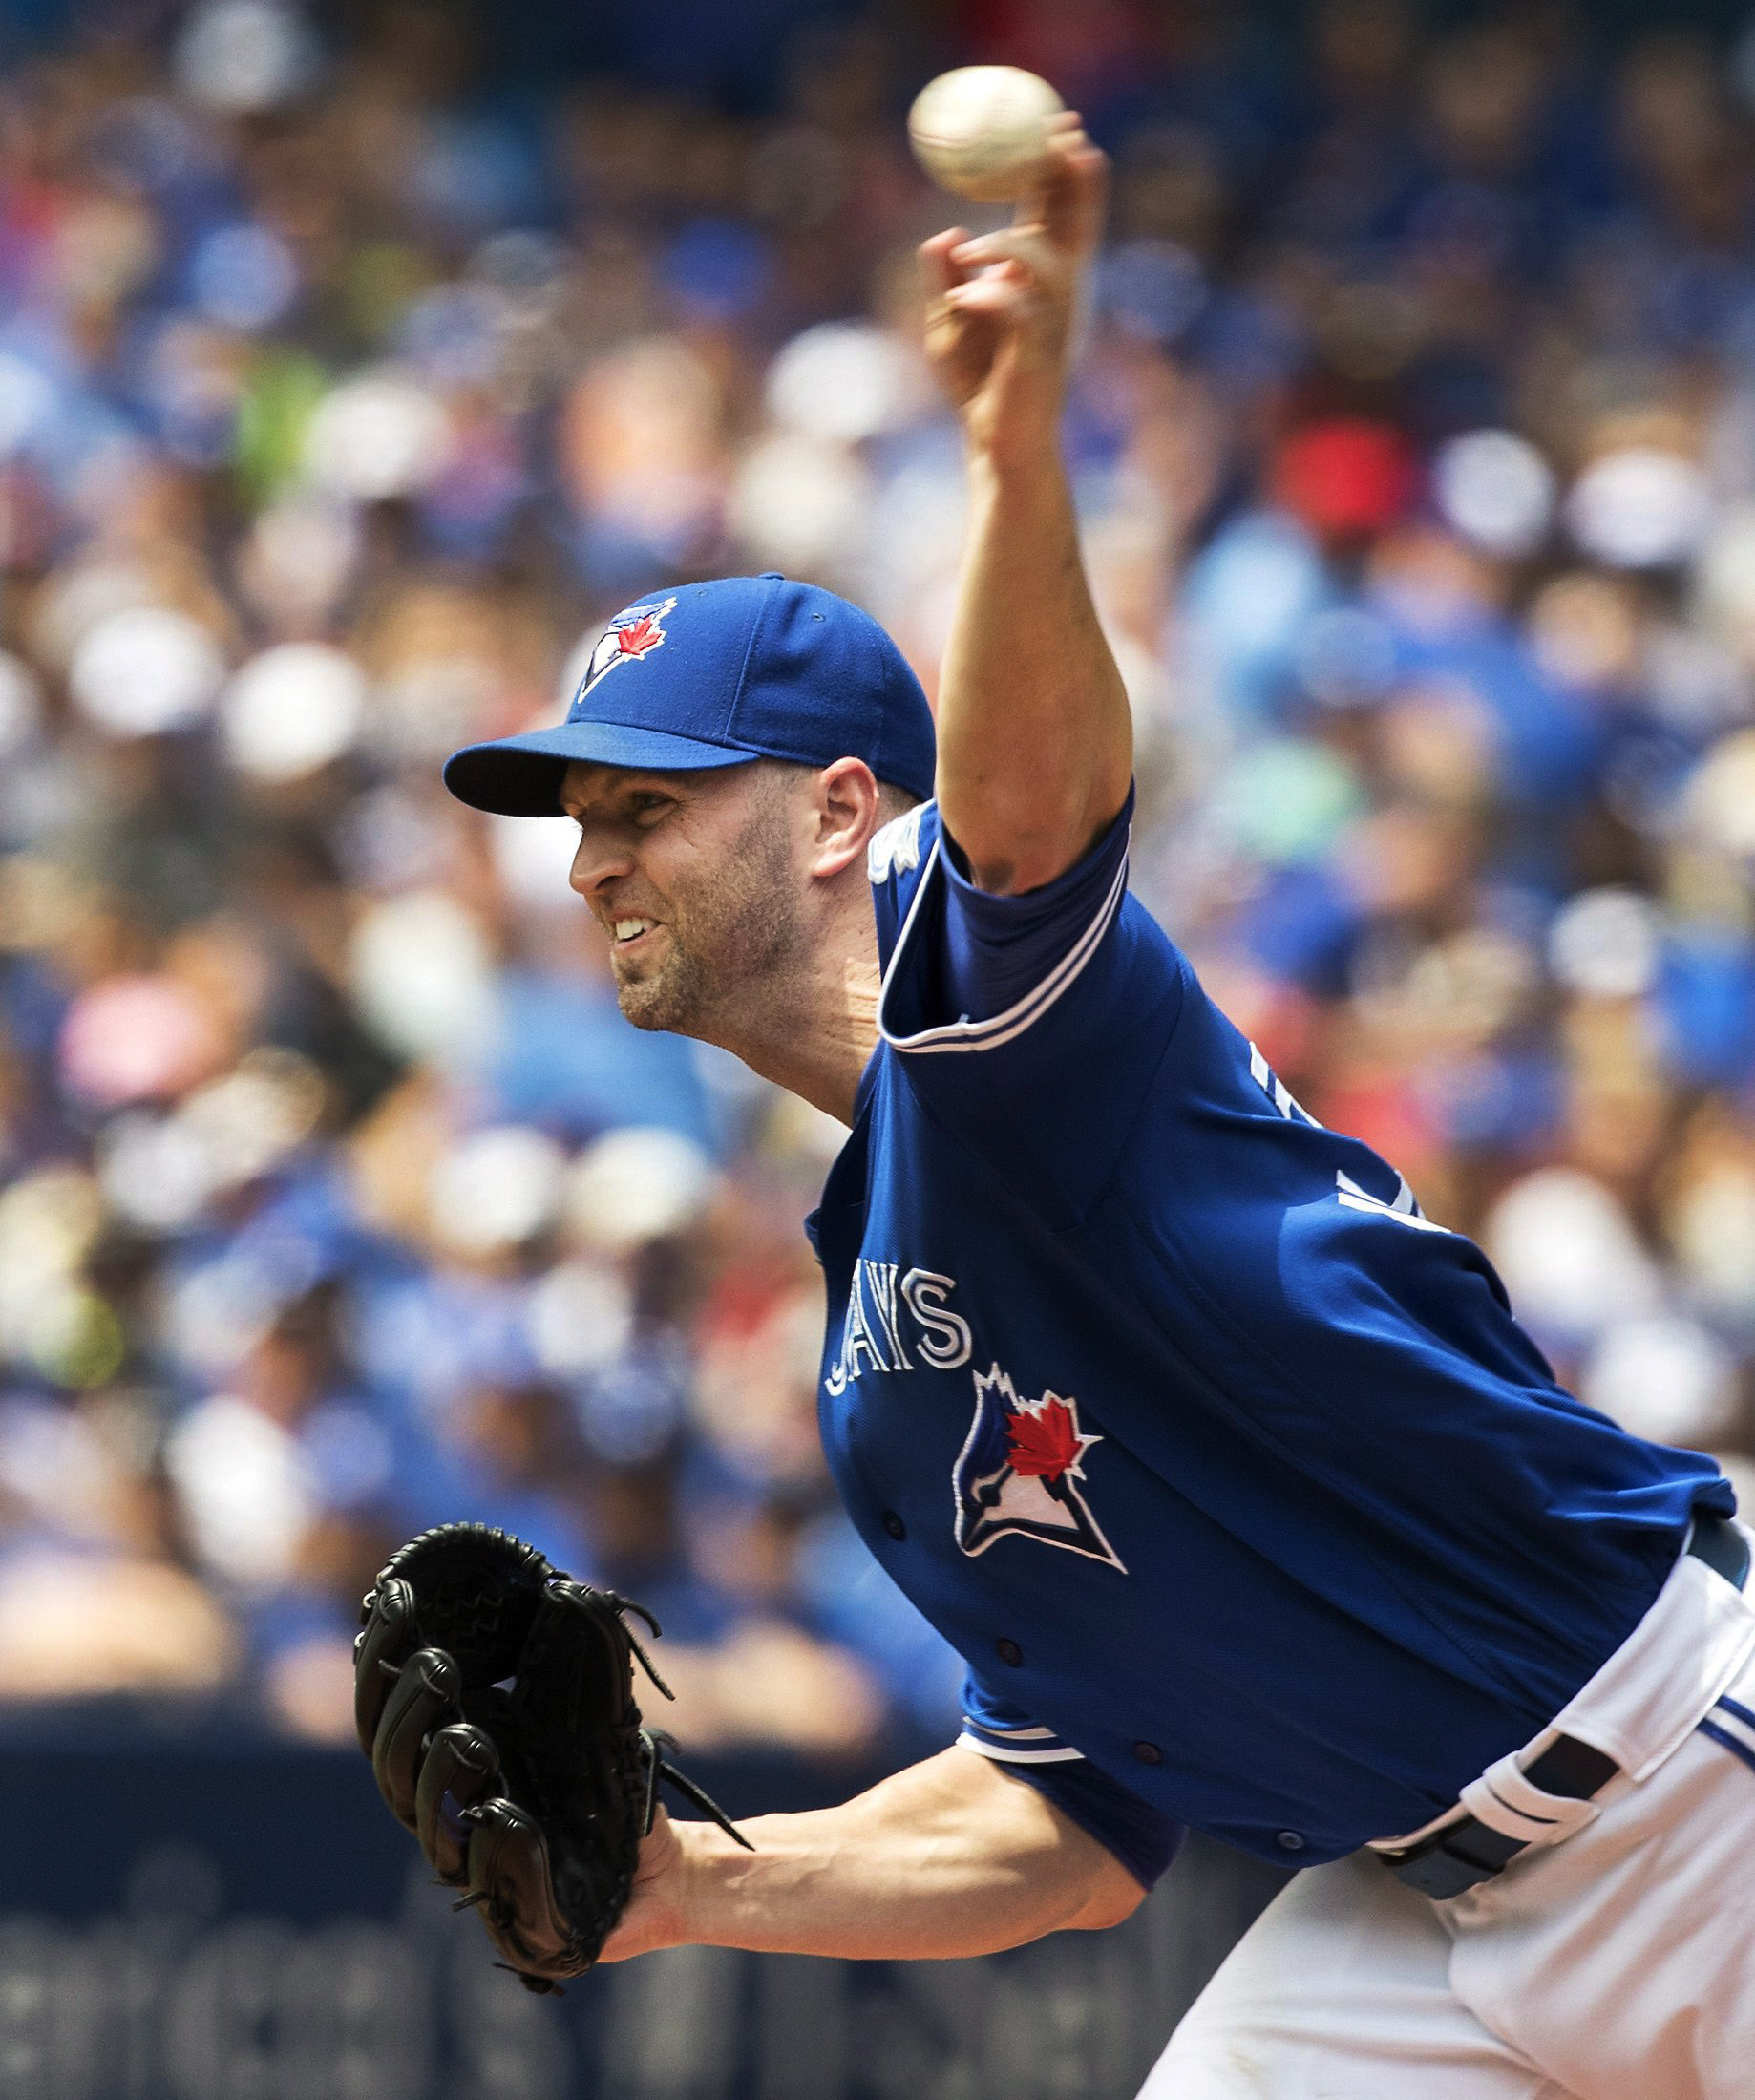 Toronto Blue Jays starting pitcher J.A. Happ throws to a Seattle Mariners batter during the first inning of a baseball game in Toronto on Sunday July 24, 2016. (Fred Thornhill/The Canadian Press via AP)